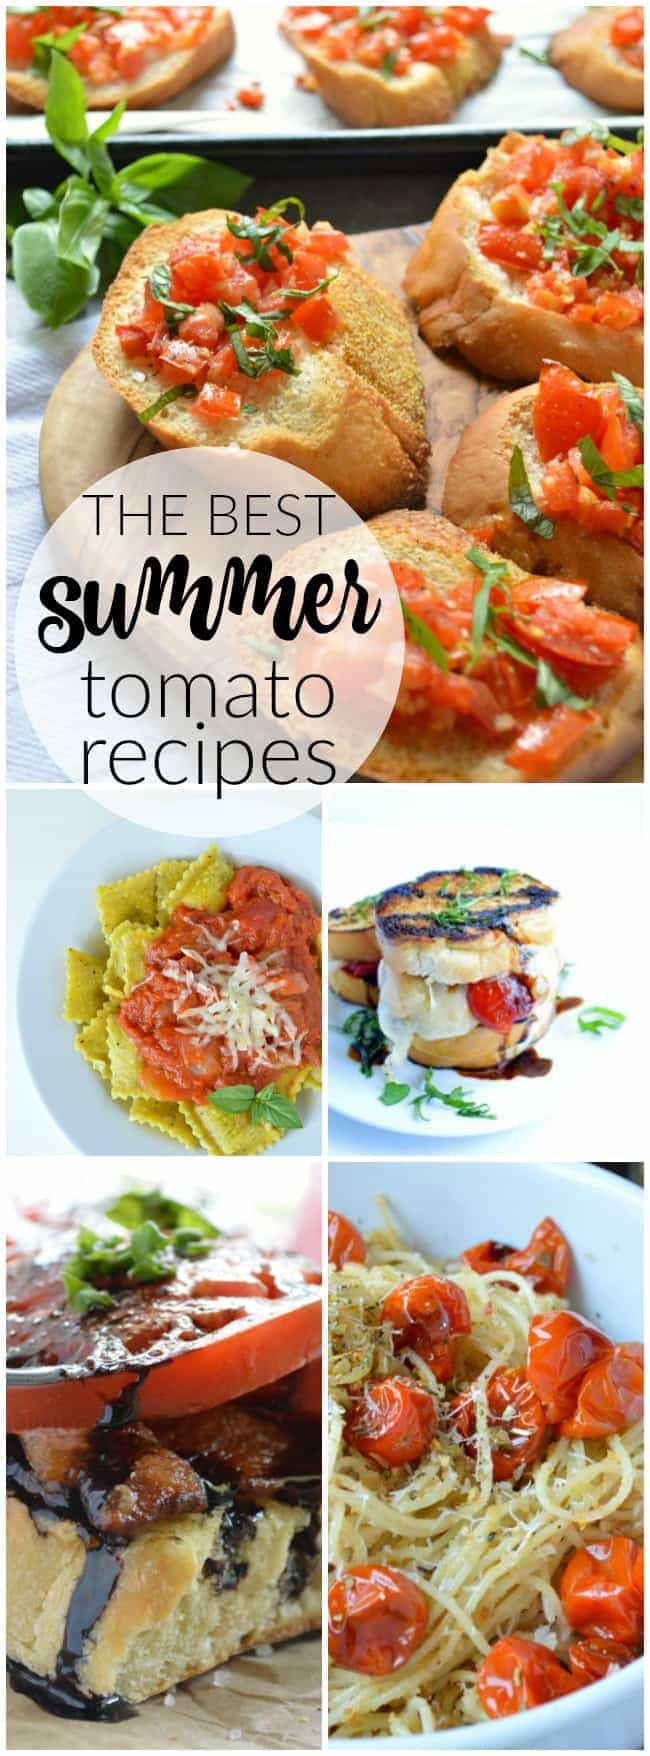 The Best Summer Tomato Recipes